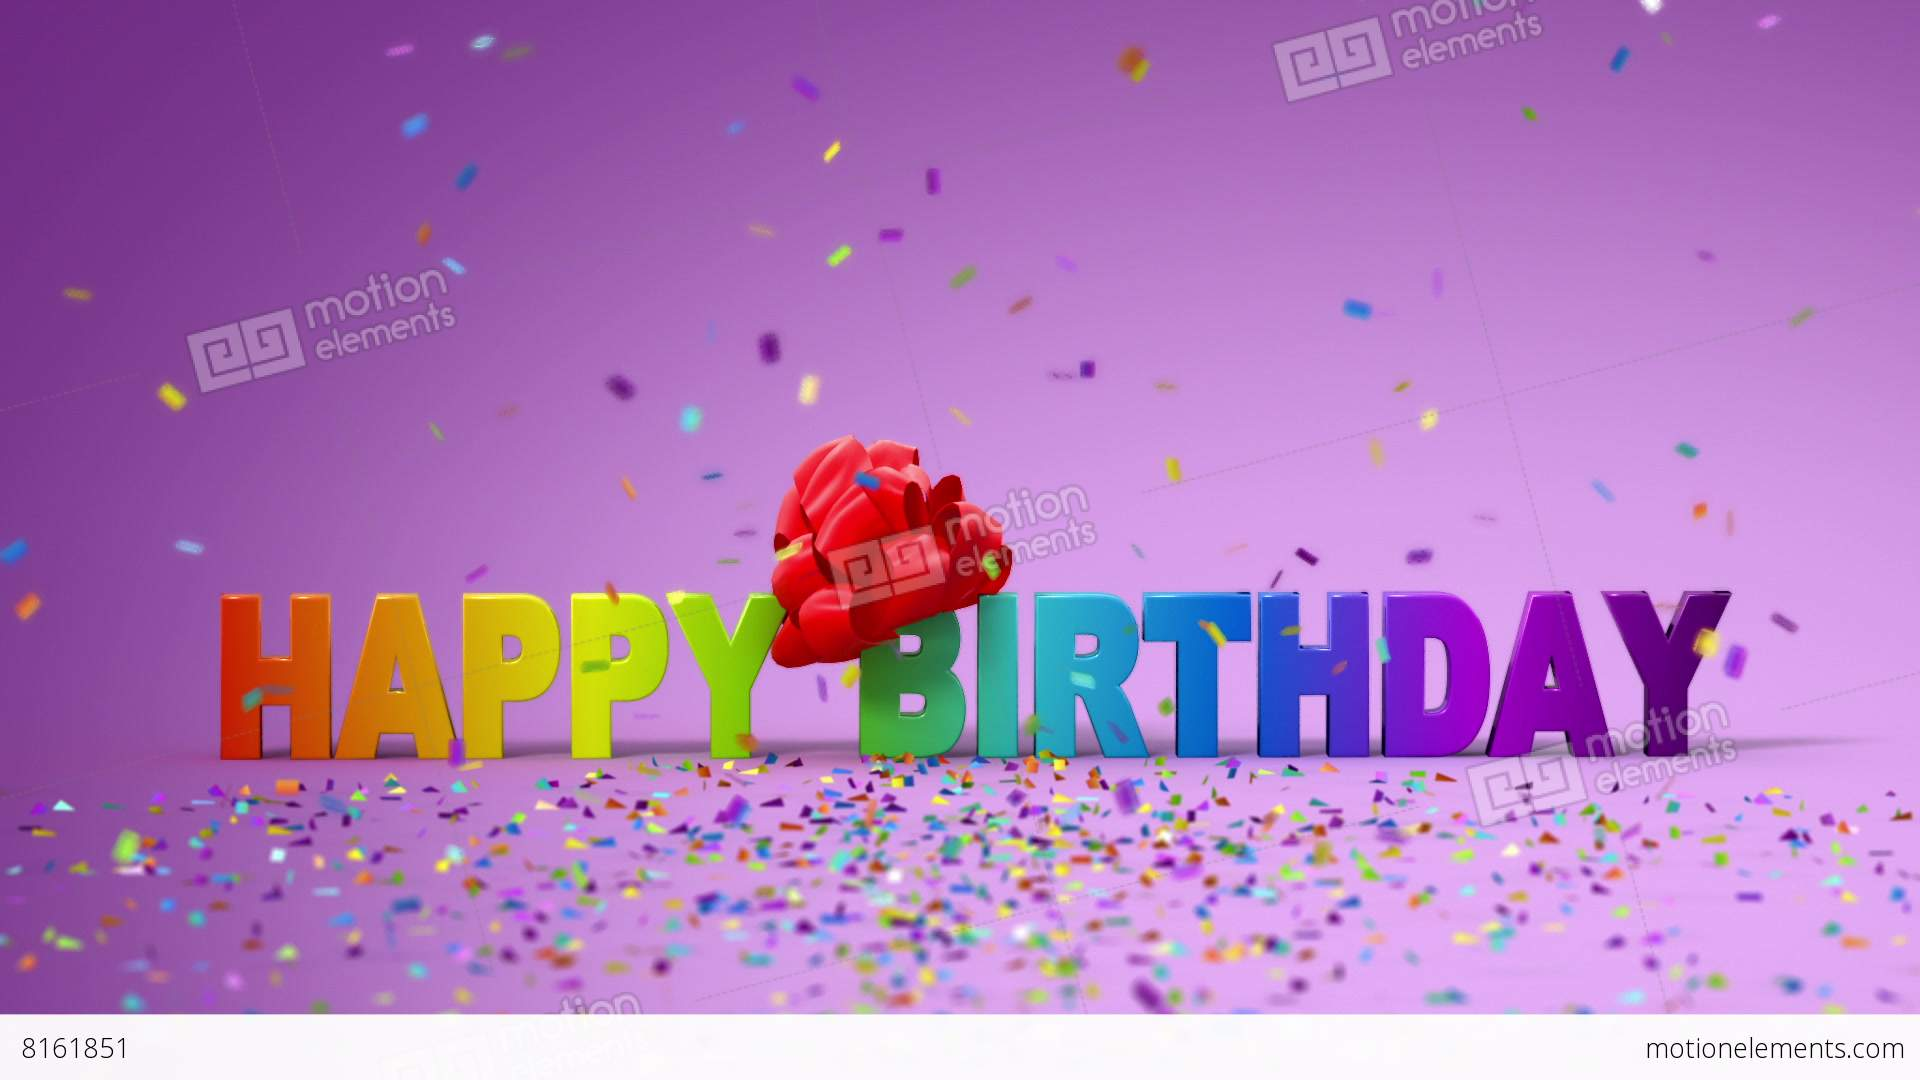 Happy Birthday Funny 3d Animation Video Hintergrund